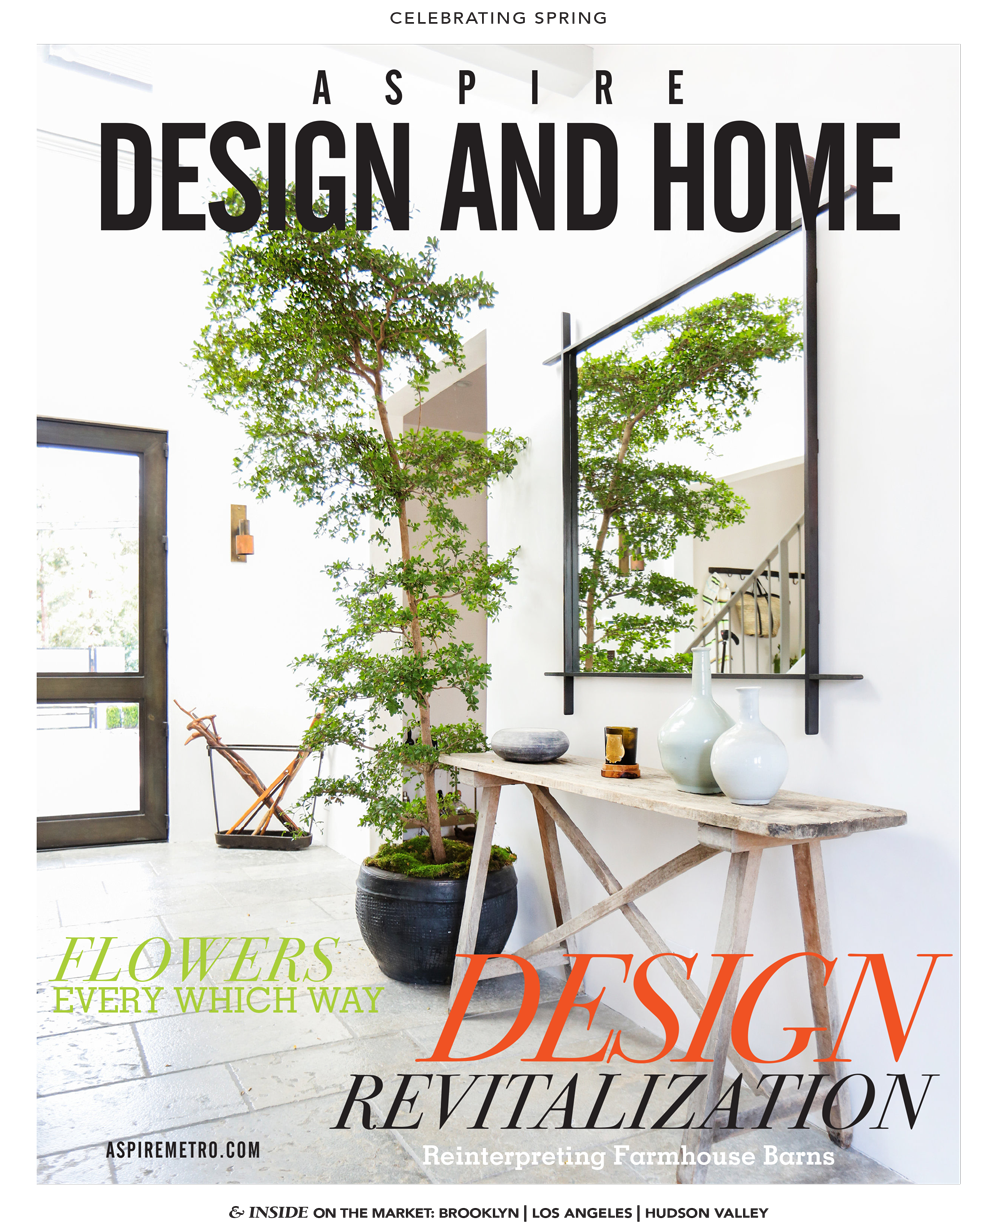 Naya-Traveler_Aspire-Design-and-Home-Magazine_Spring-2018.png